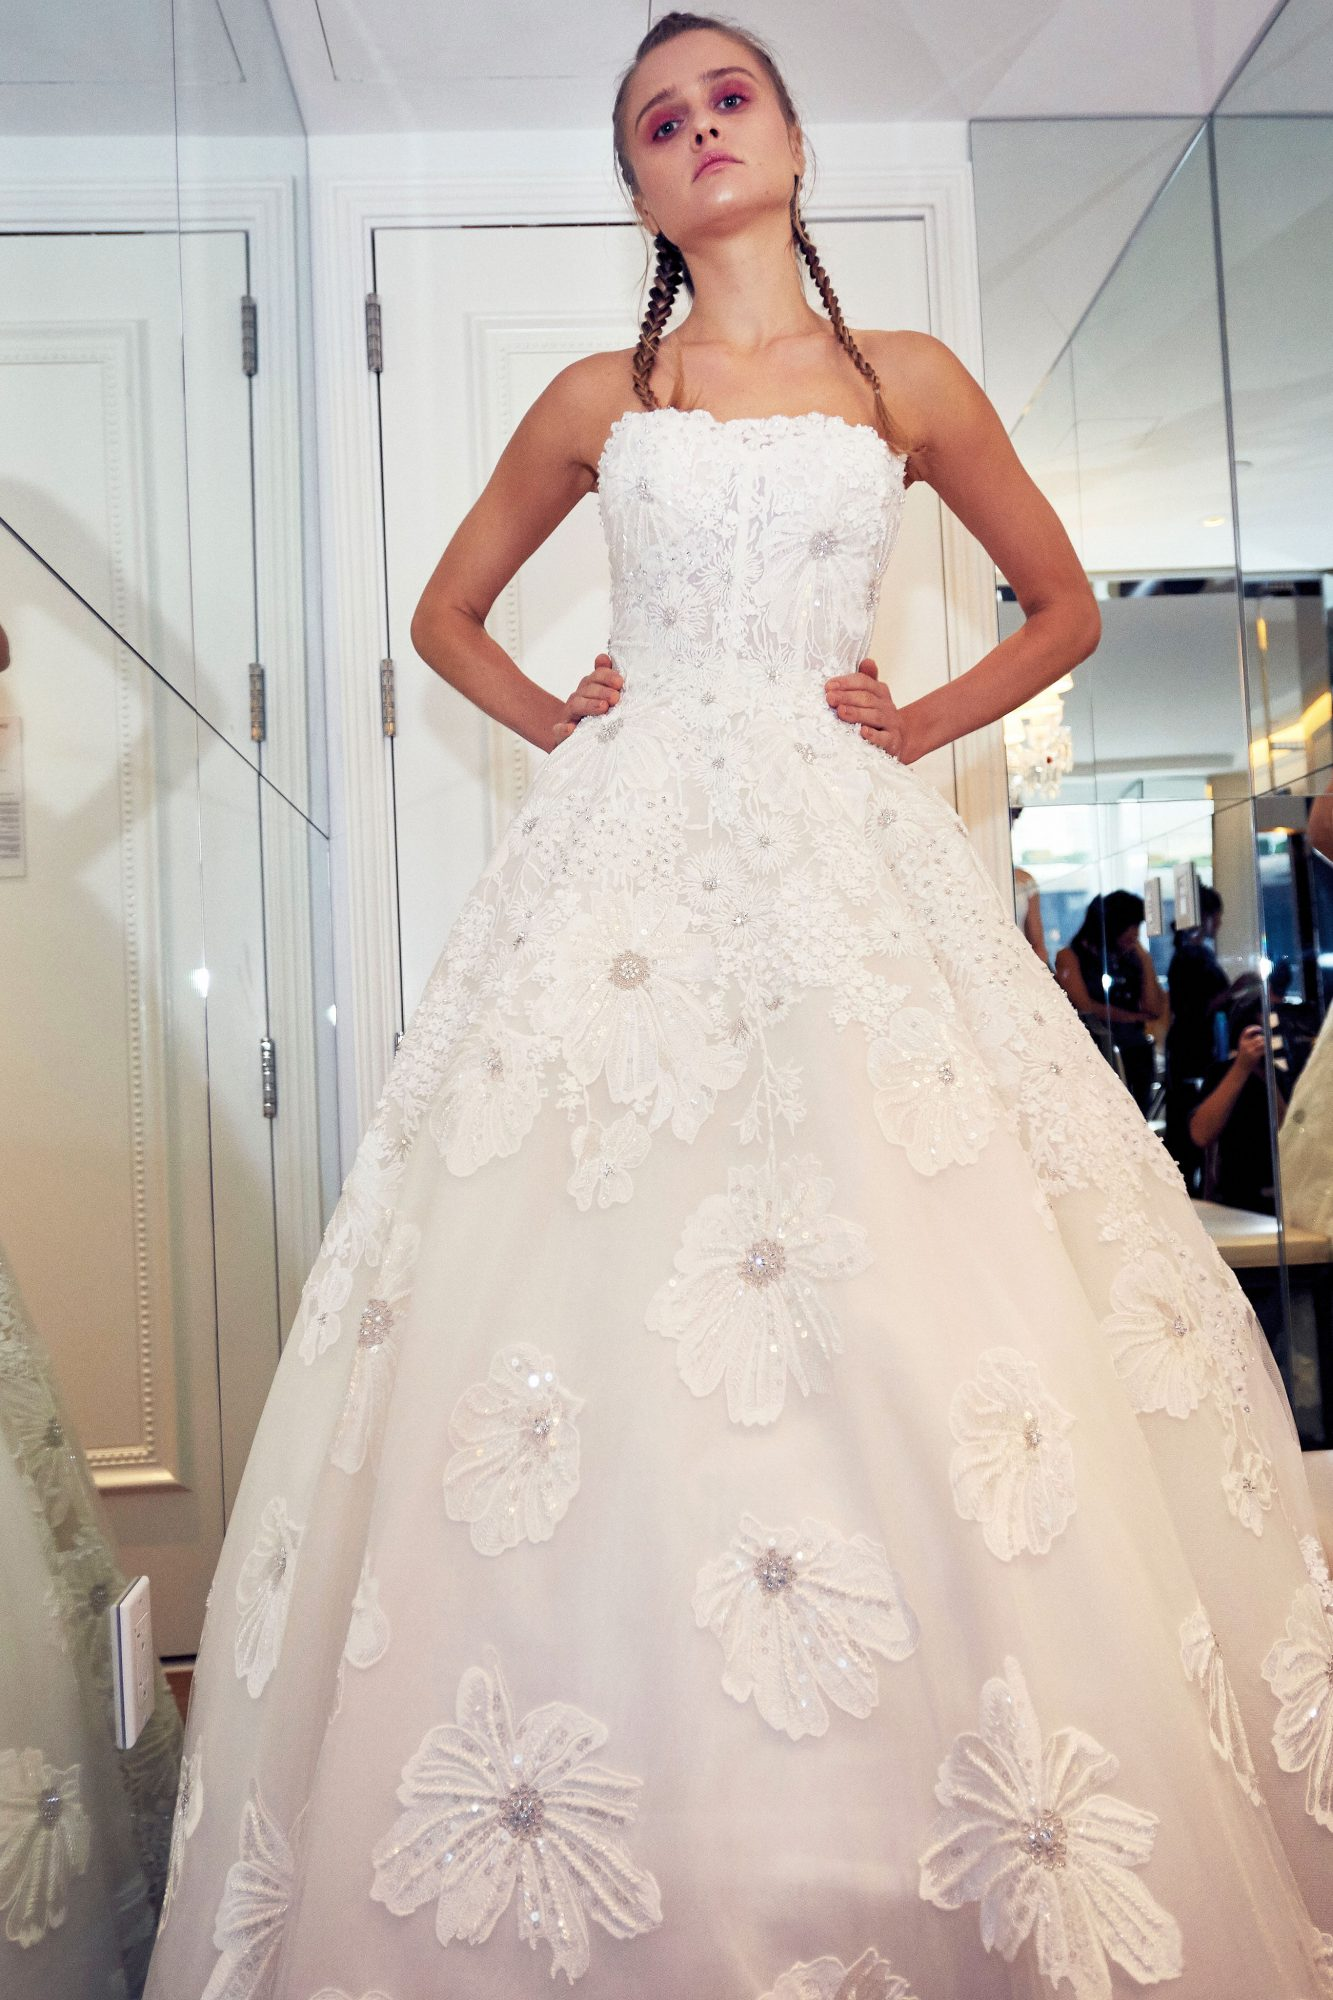 isabelle armstrong wedding dress fall 2018 strapless flower embellished ball gown